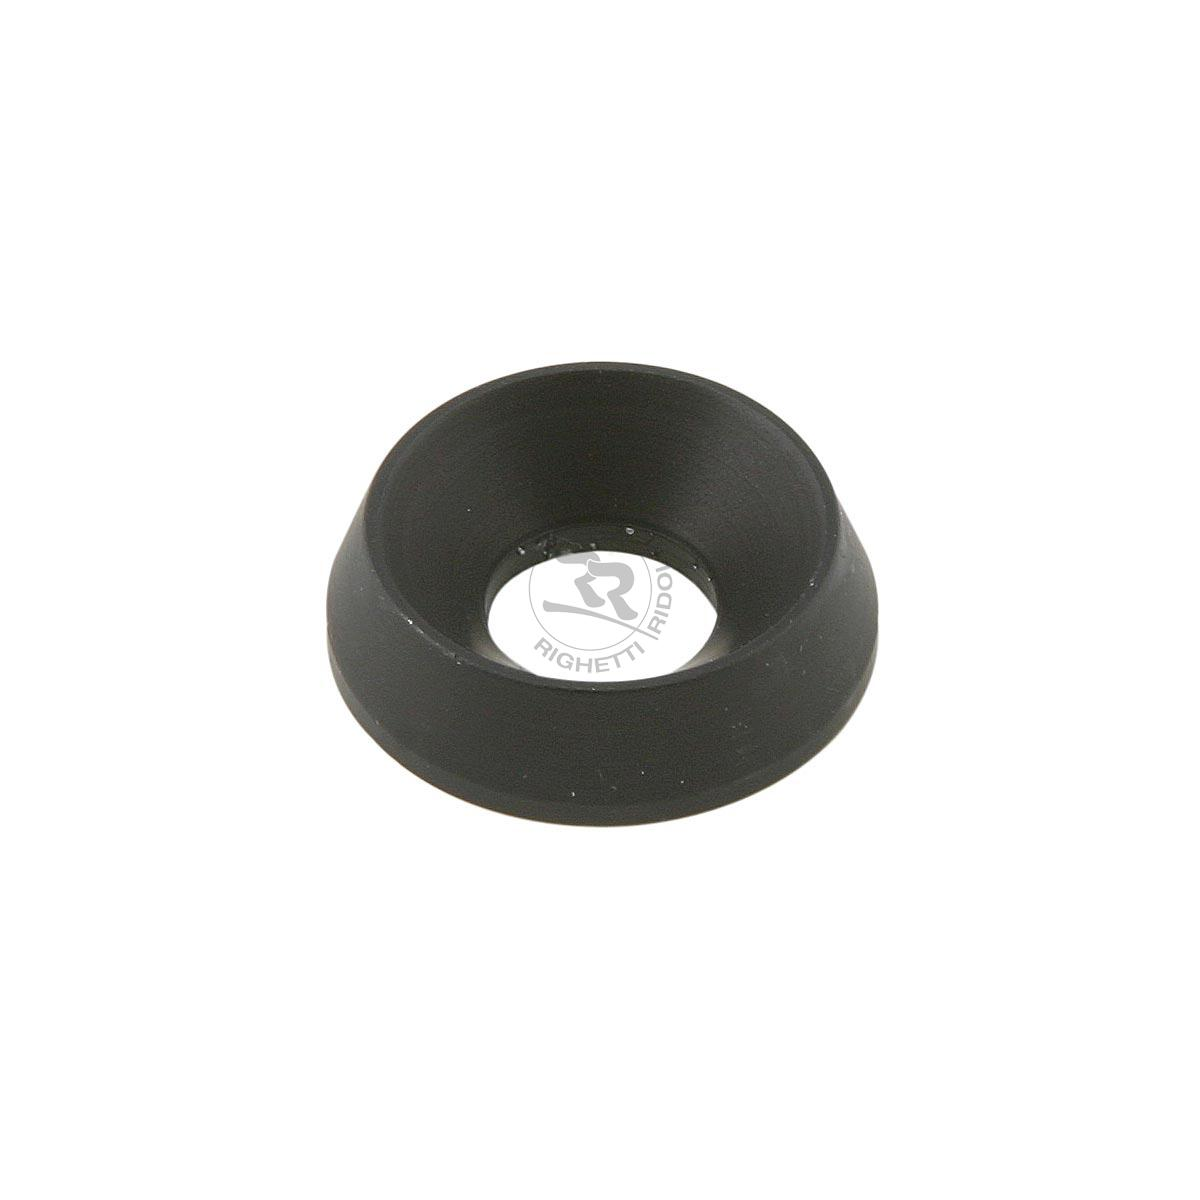 ALUMINIUM COUNTERSUNK WASHER 19 x 8mm, BLACK ANODIZED